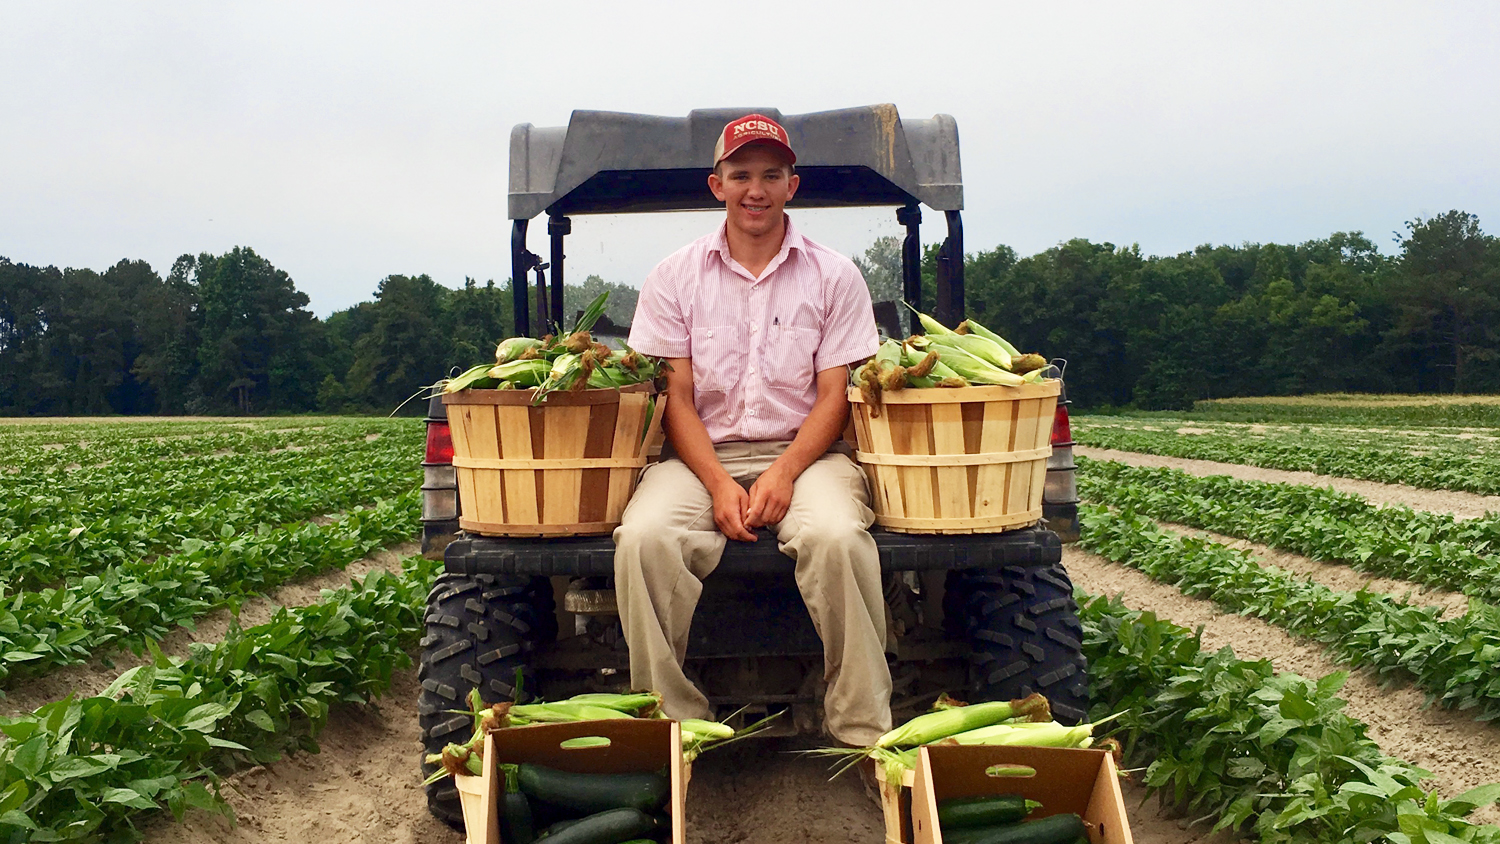 NCState College of Agriculture and LIfe Sciences student Collin Blalock sits on the back of a tractor with in a field. He is surrounded by bushels of produce.